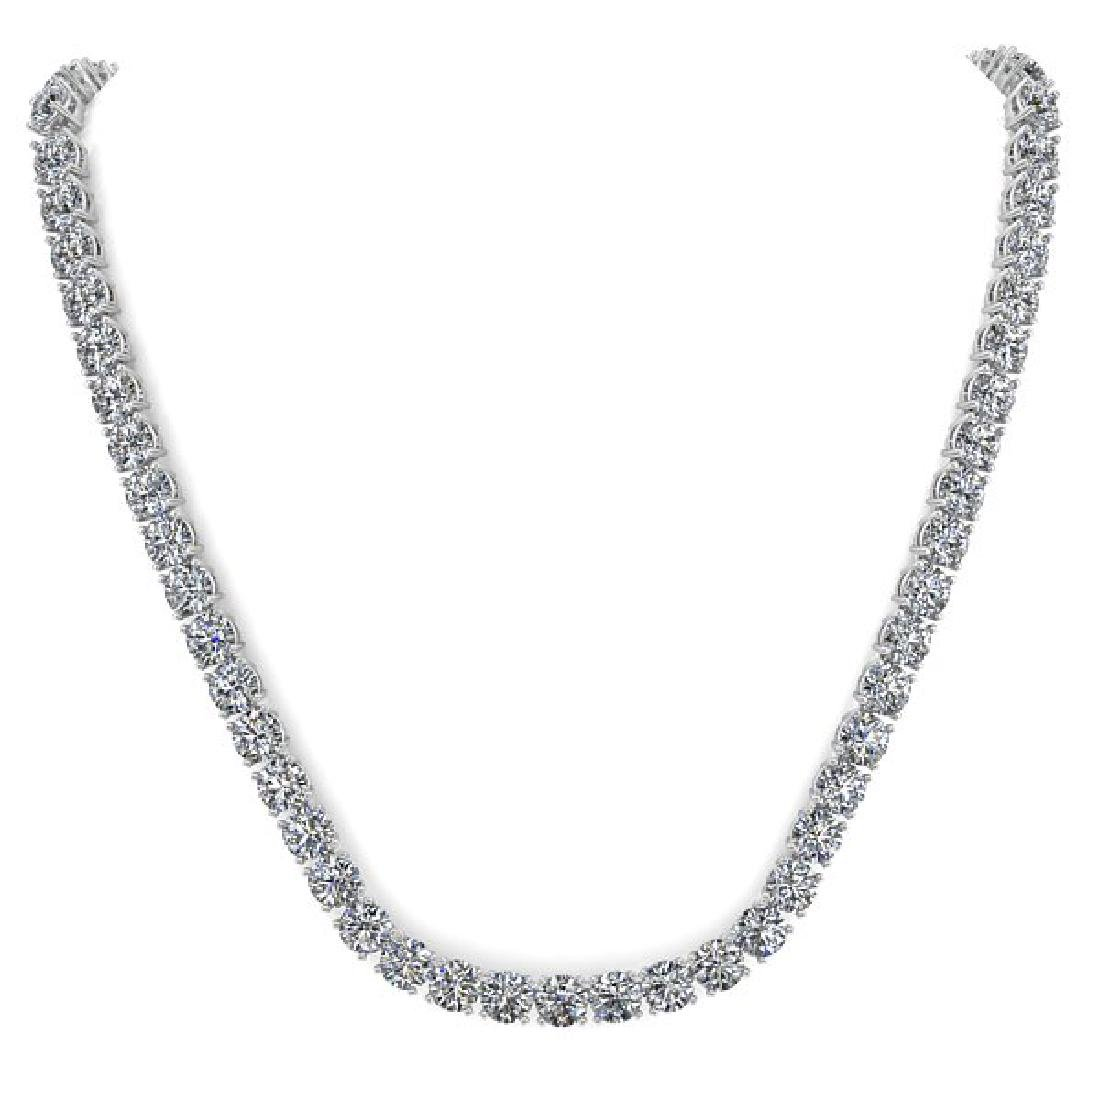 34 CTW Certified SI Diamond Necklace 14K White Gold - 3